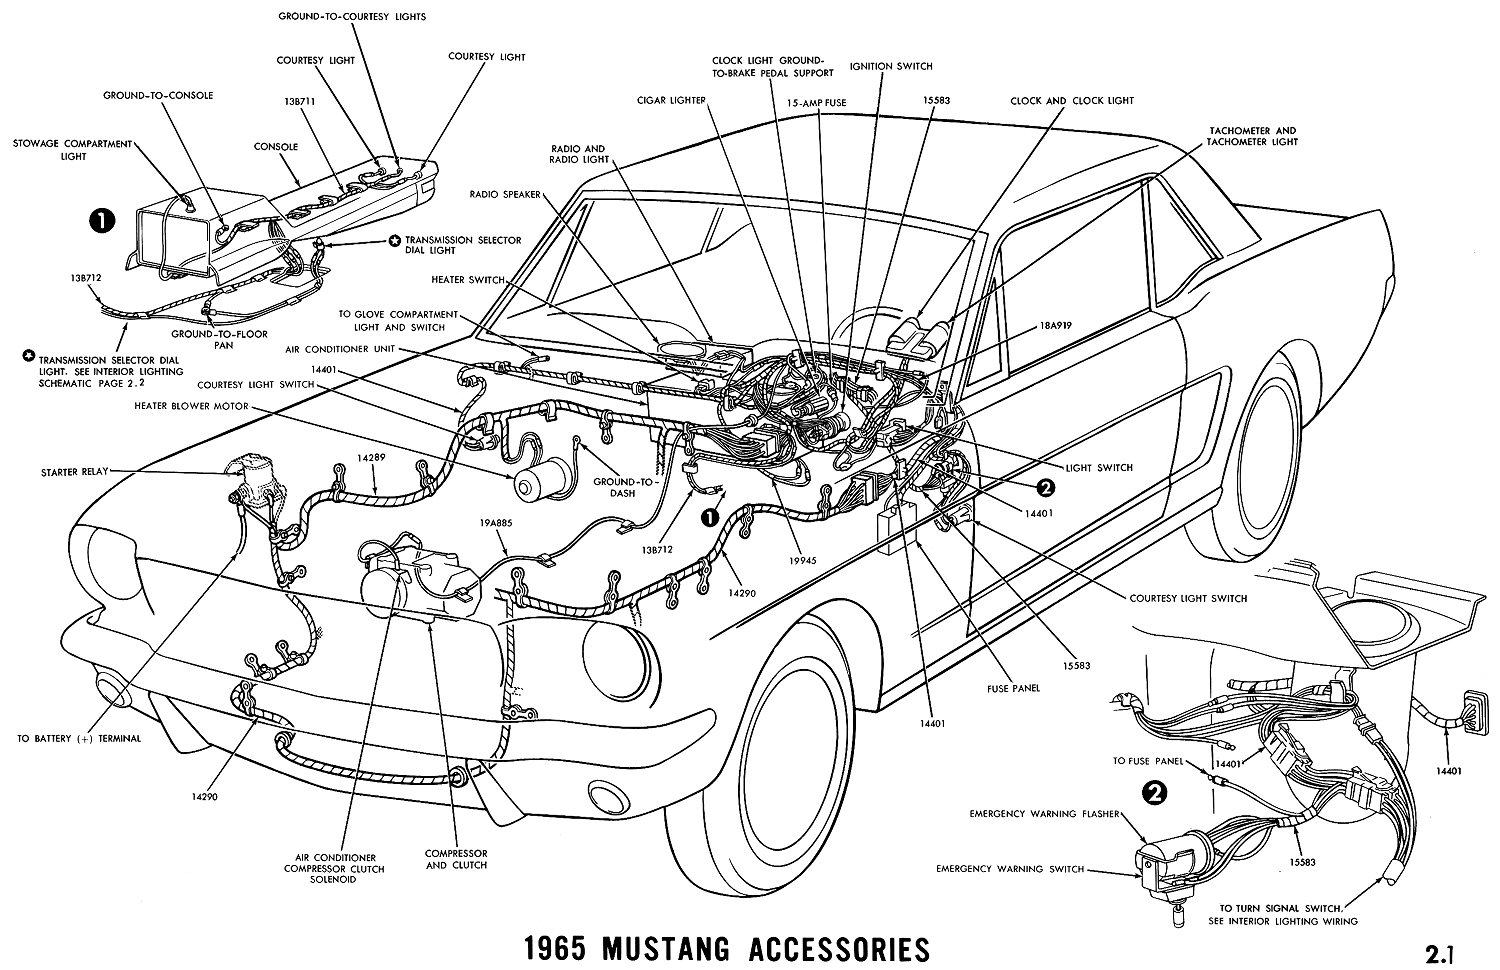 1965h 1965 mustang wiring diagrams average joe restoration 65 Chevy Truck Wiring Diagram at creativeand.co